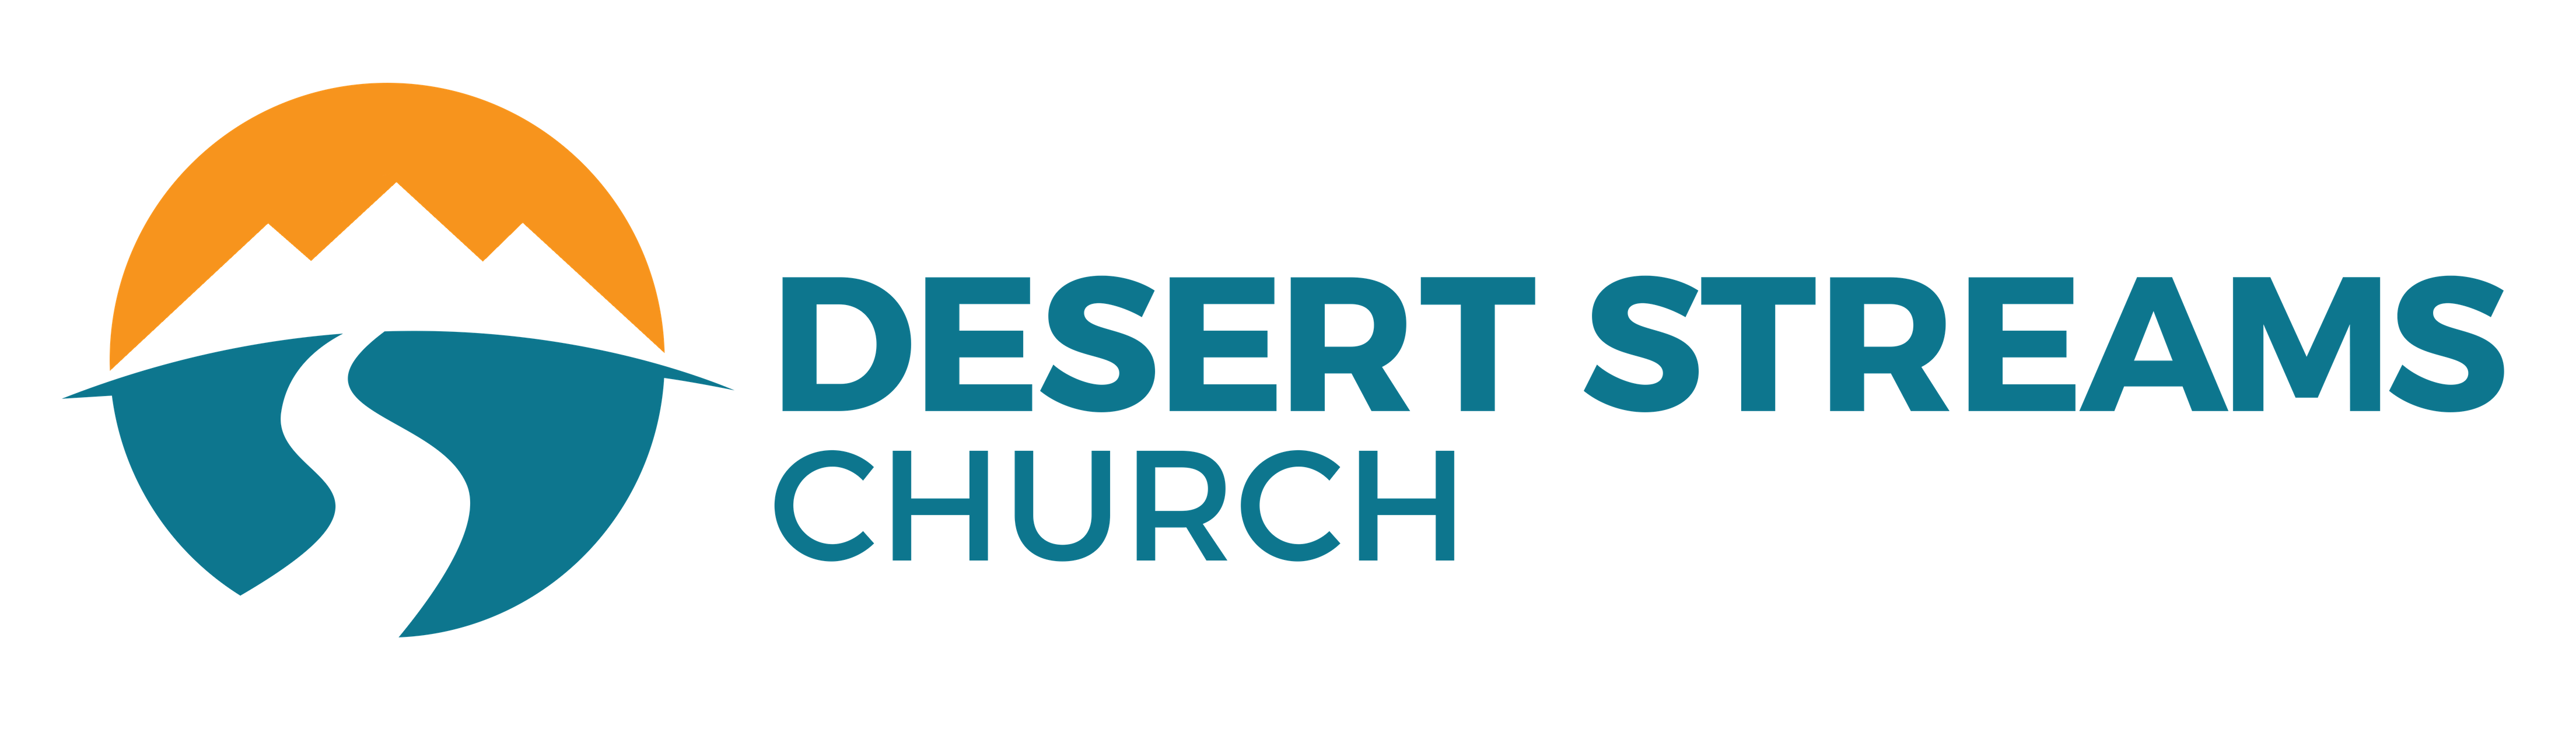 Desert Streams Church | Bend, Oregon